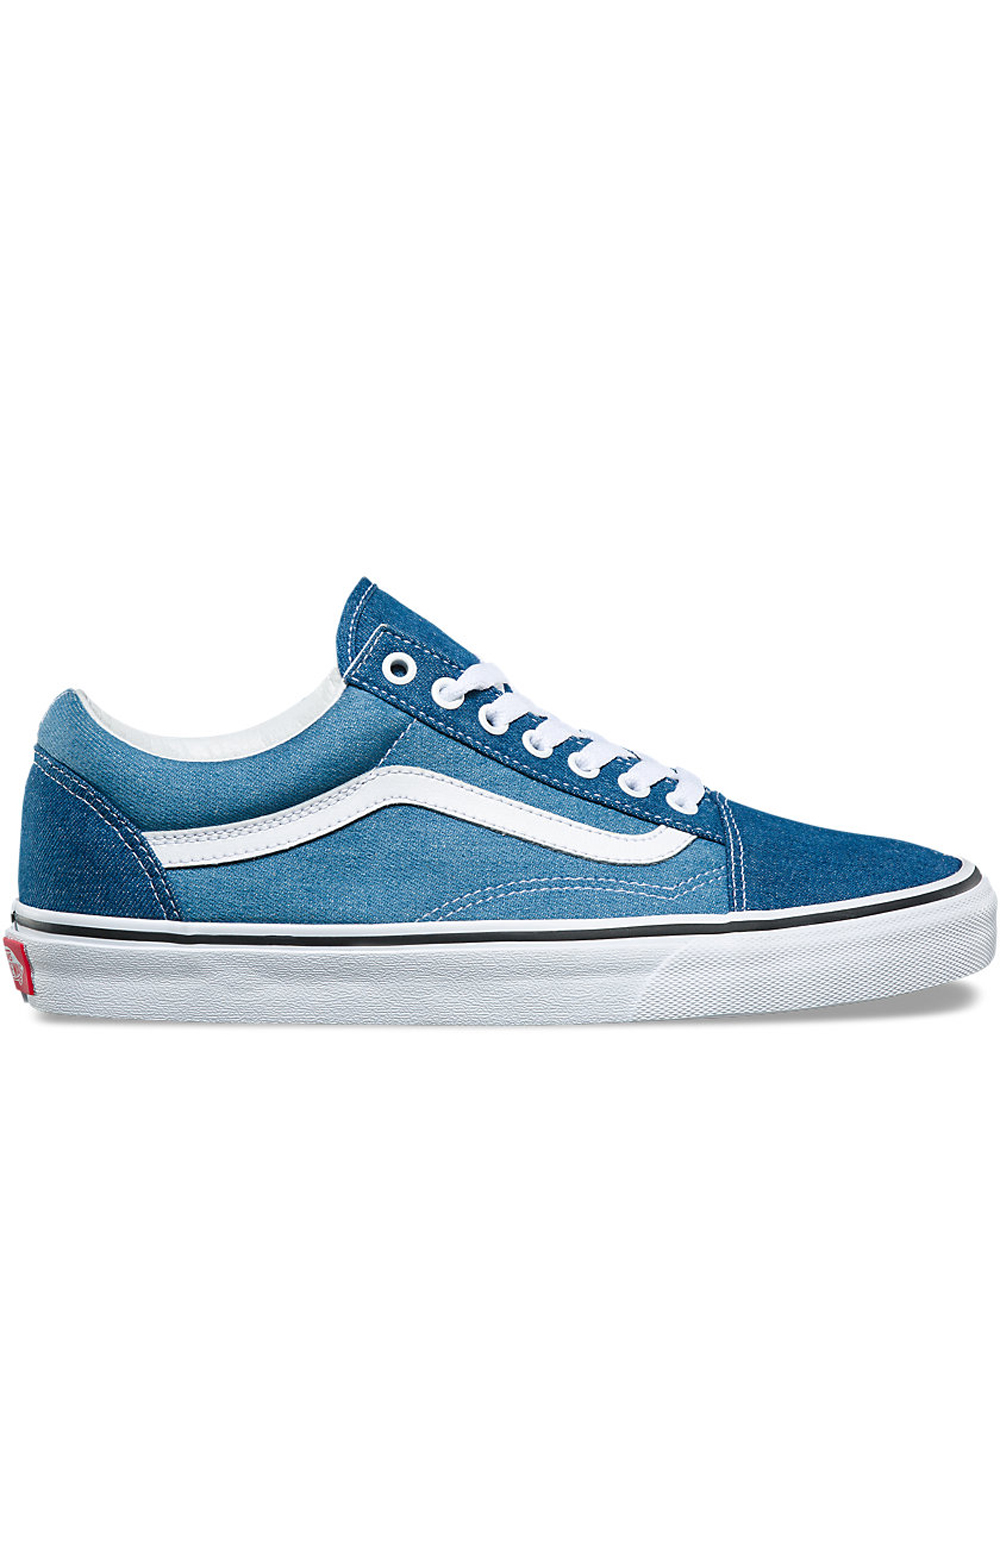 (8G1Q69) Denim 2-Tone Old Skool Shoe - Blue